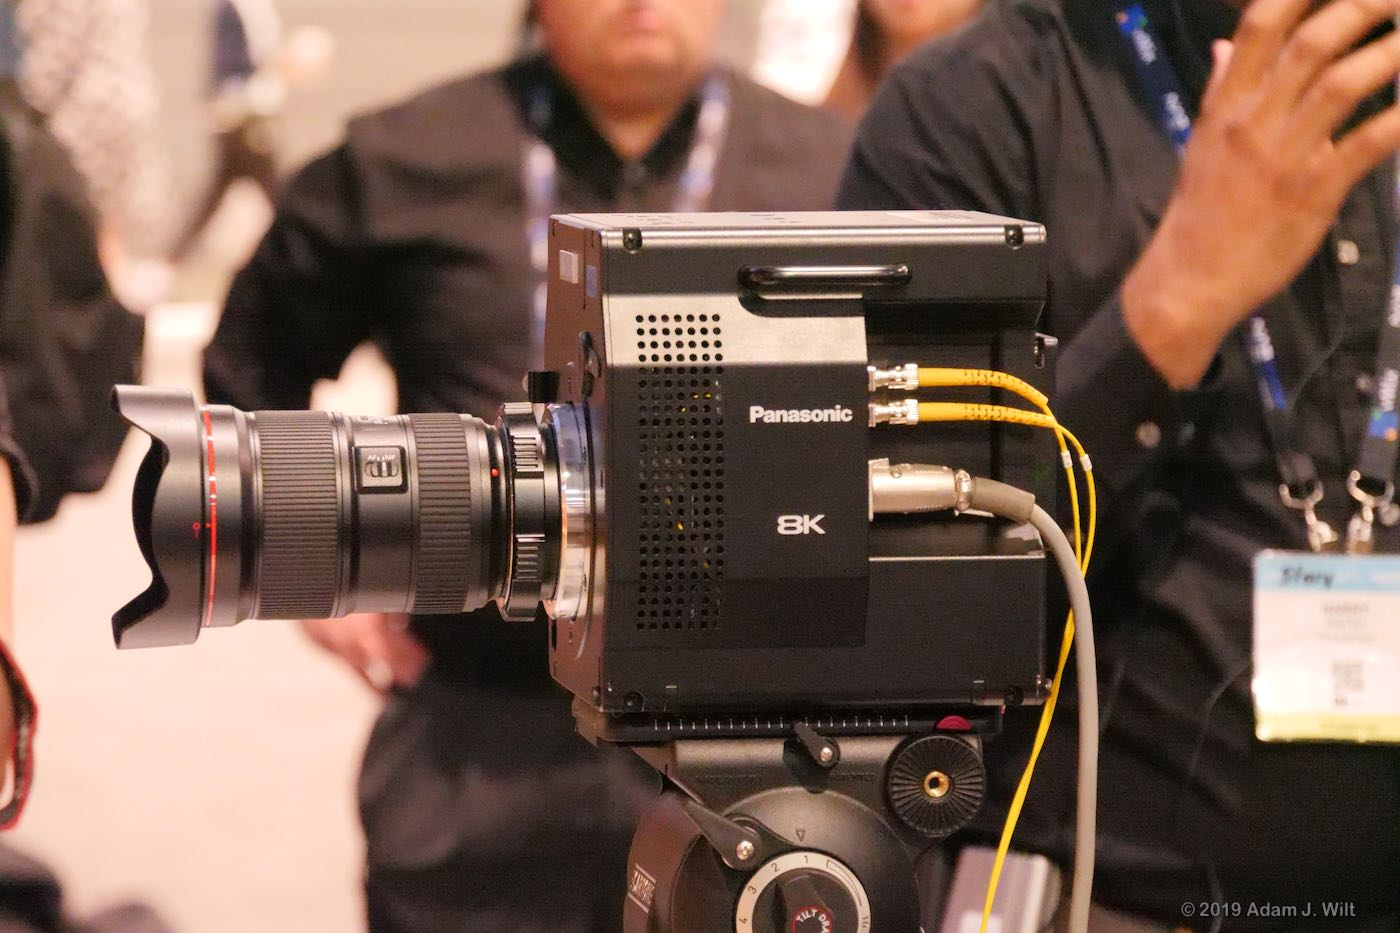 One 8K camera with a wide-angle lens...